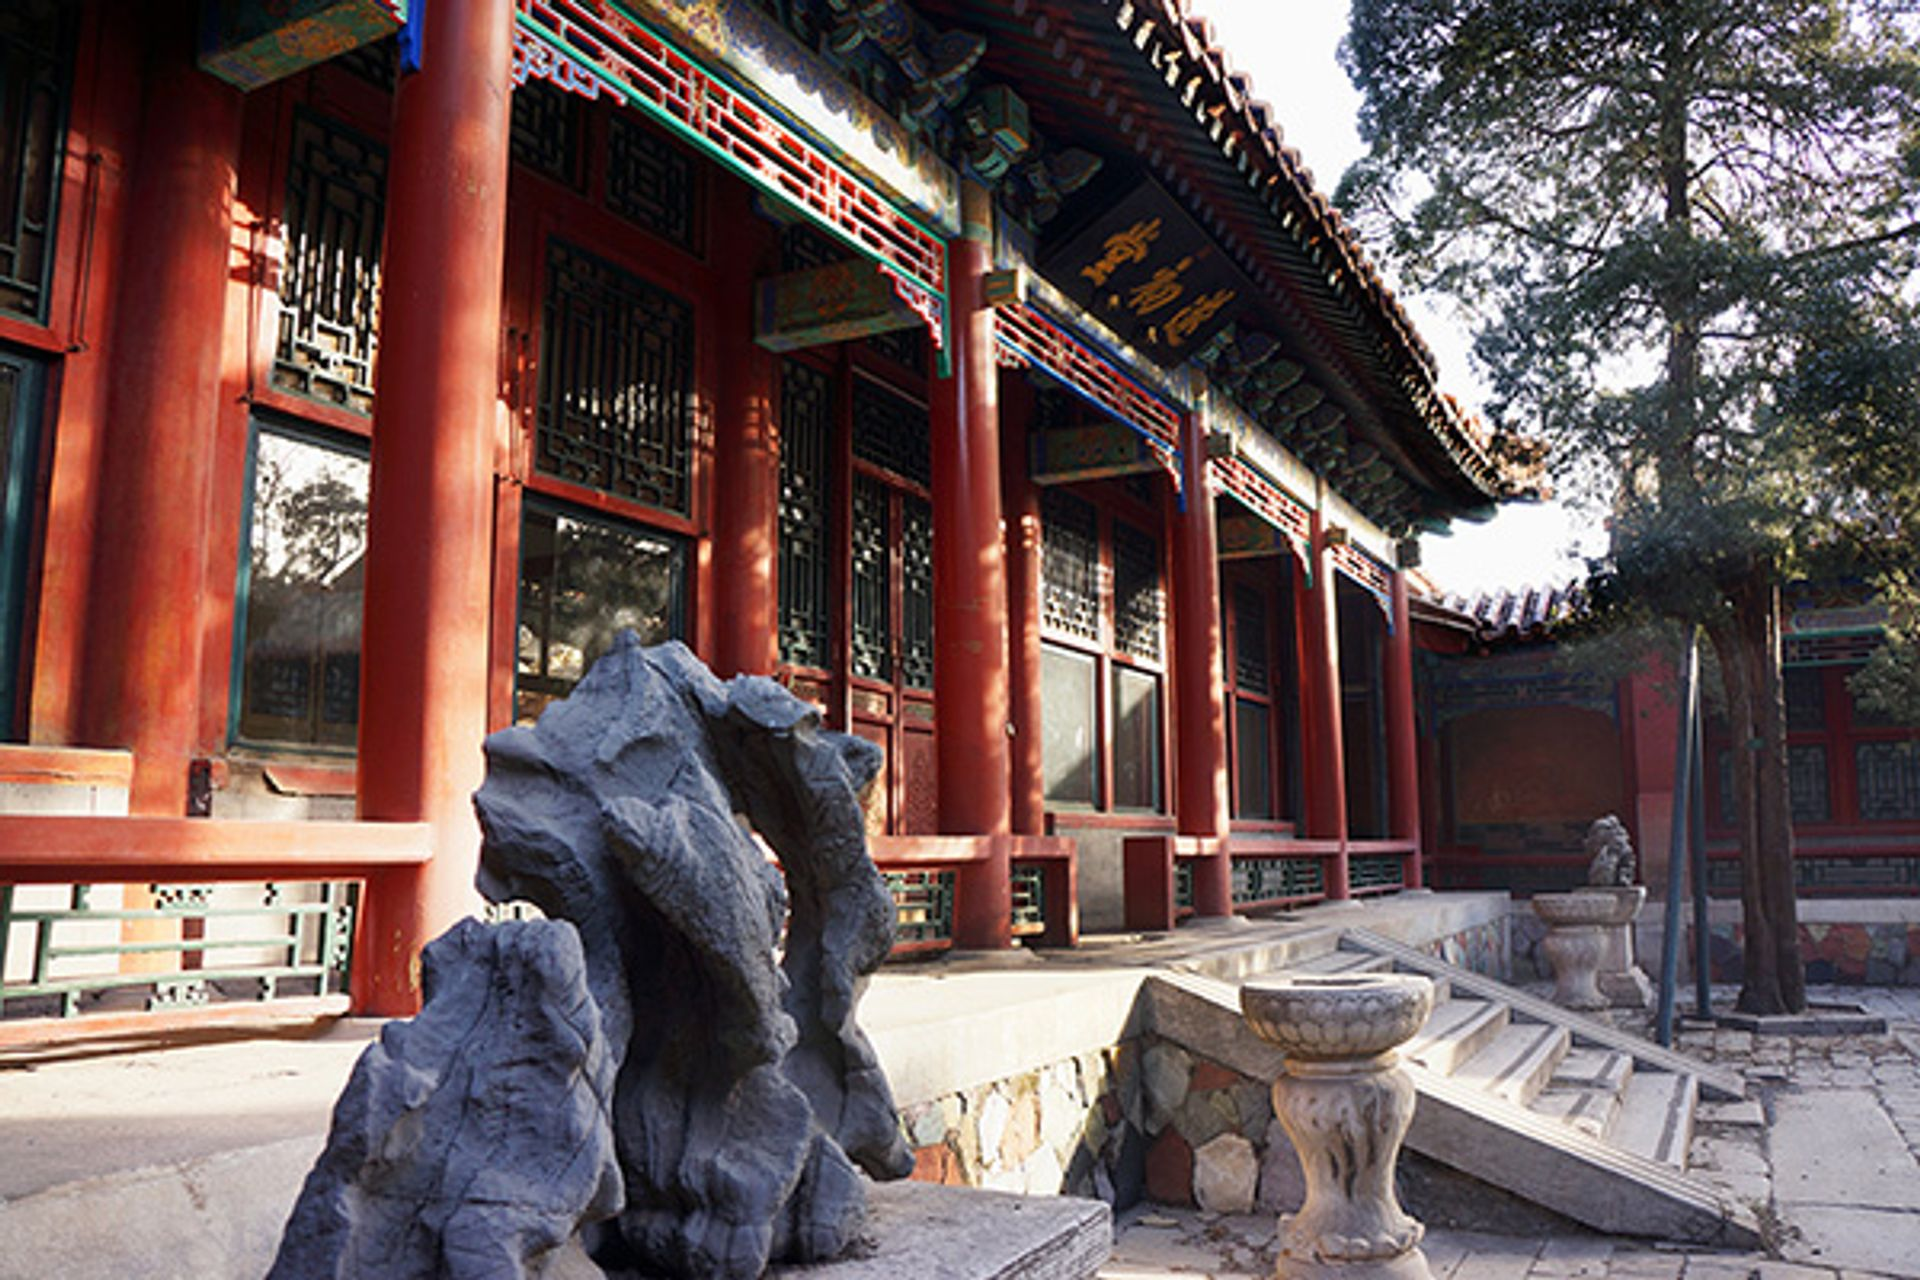 The exterior of the interpretation centre planned for Qianlong Garden in Beijing World Monuments Fund